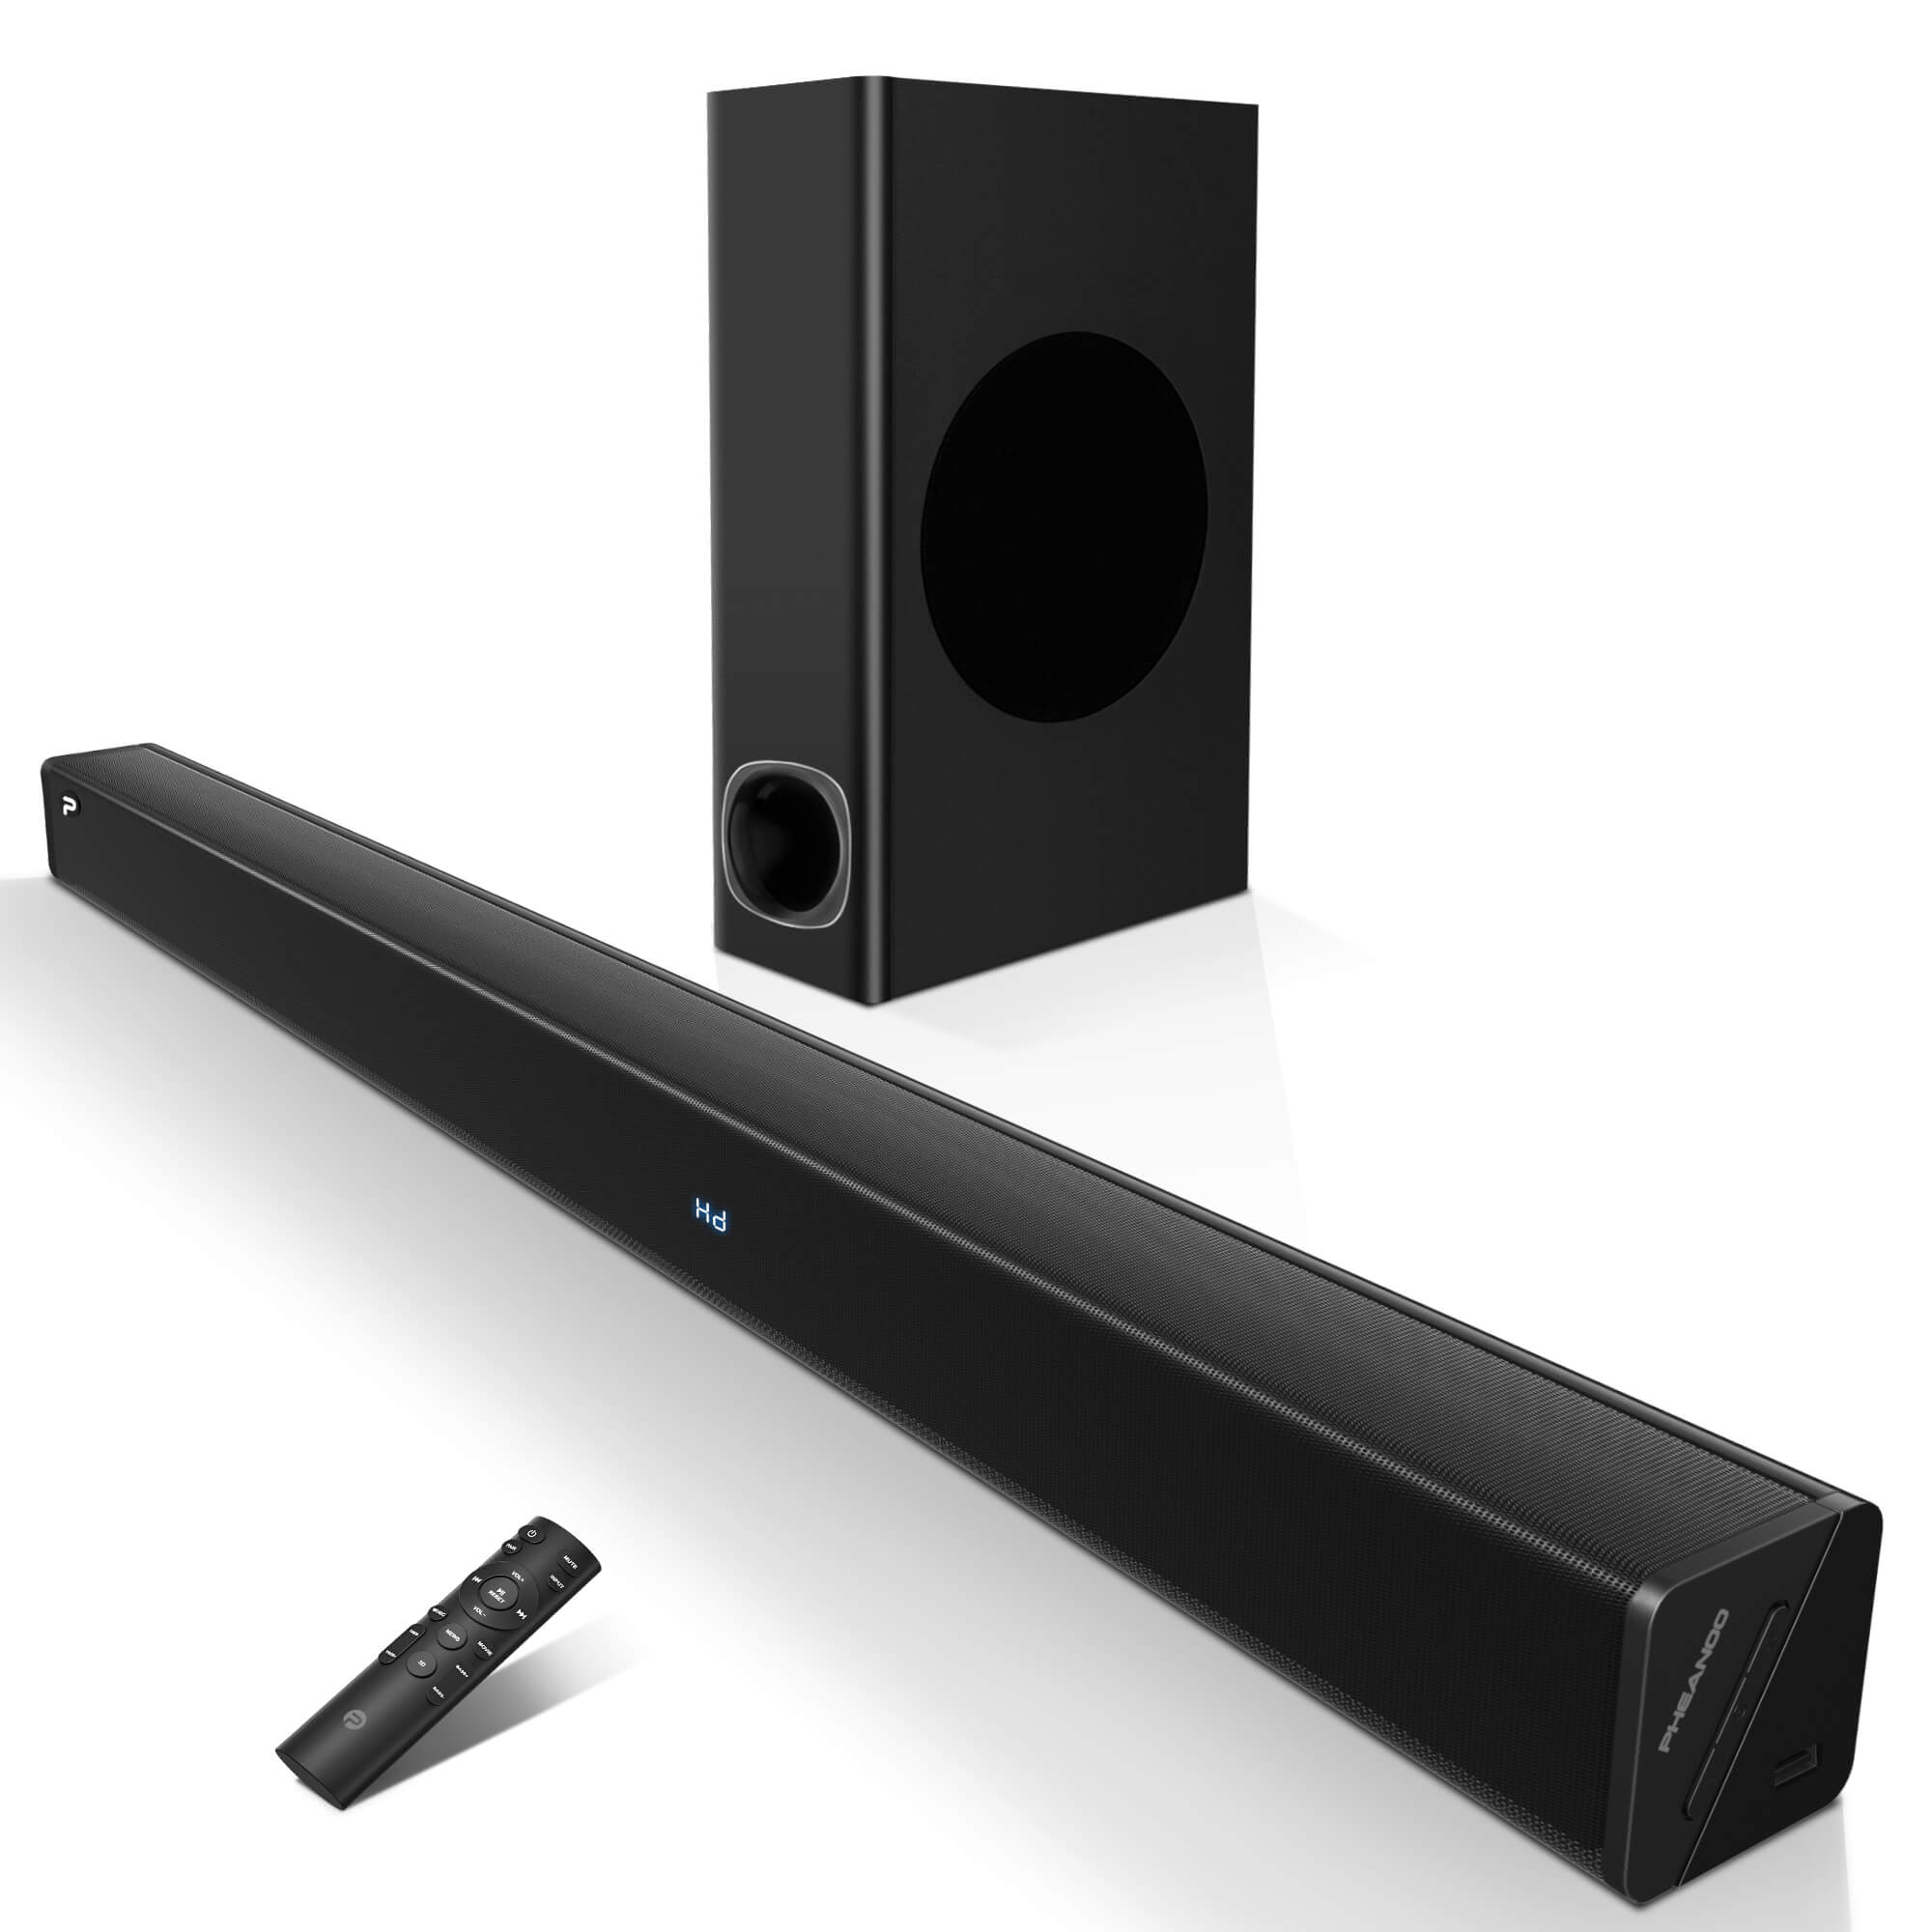 Pheanoo Audio Ltd Presents Sophisticated Sound Bars With Subwoofer P27 With Bluetooth For Home Theater Systems